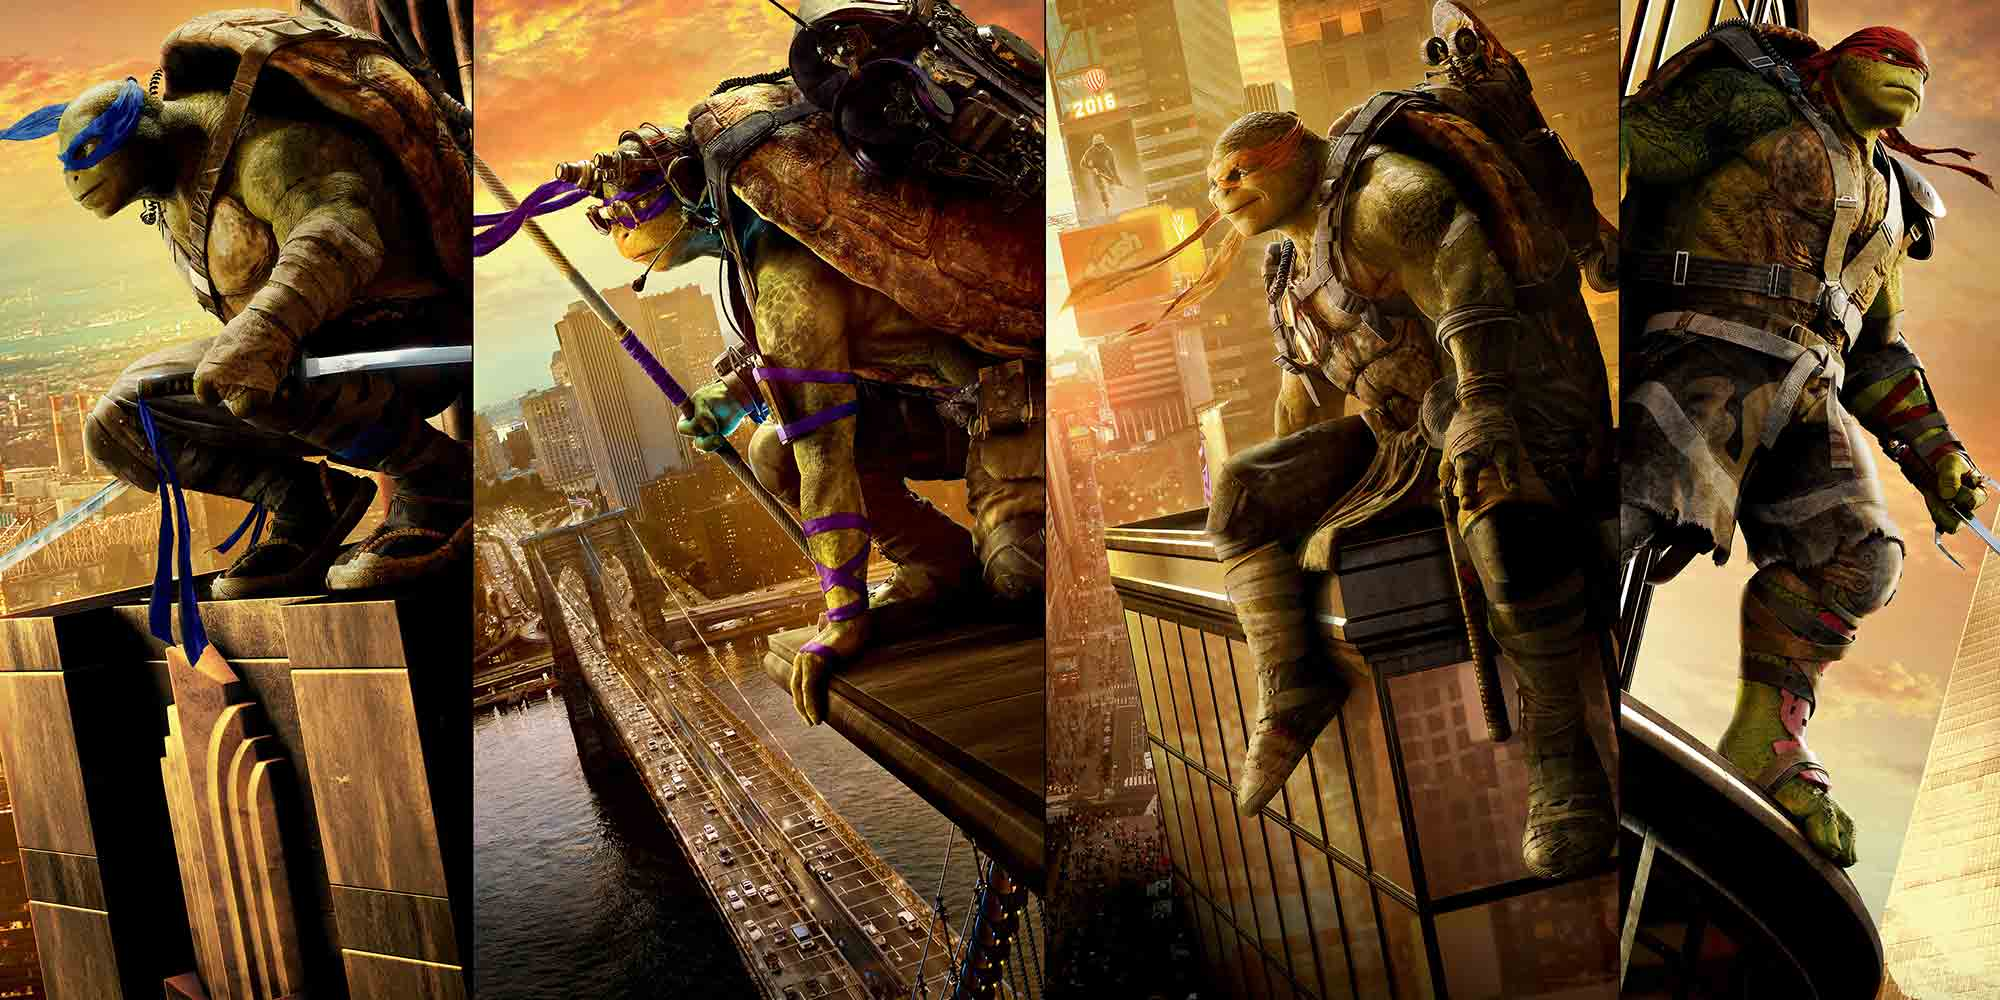 TMNT: Out of the Shadows - Header Image